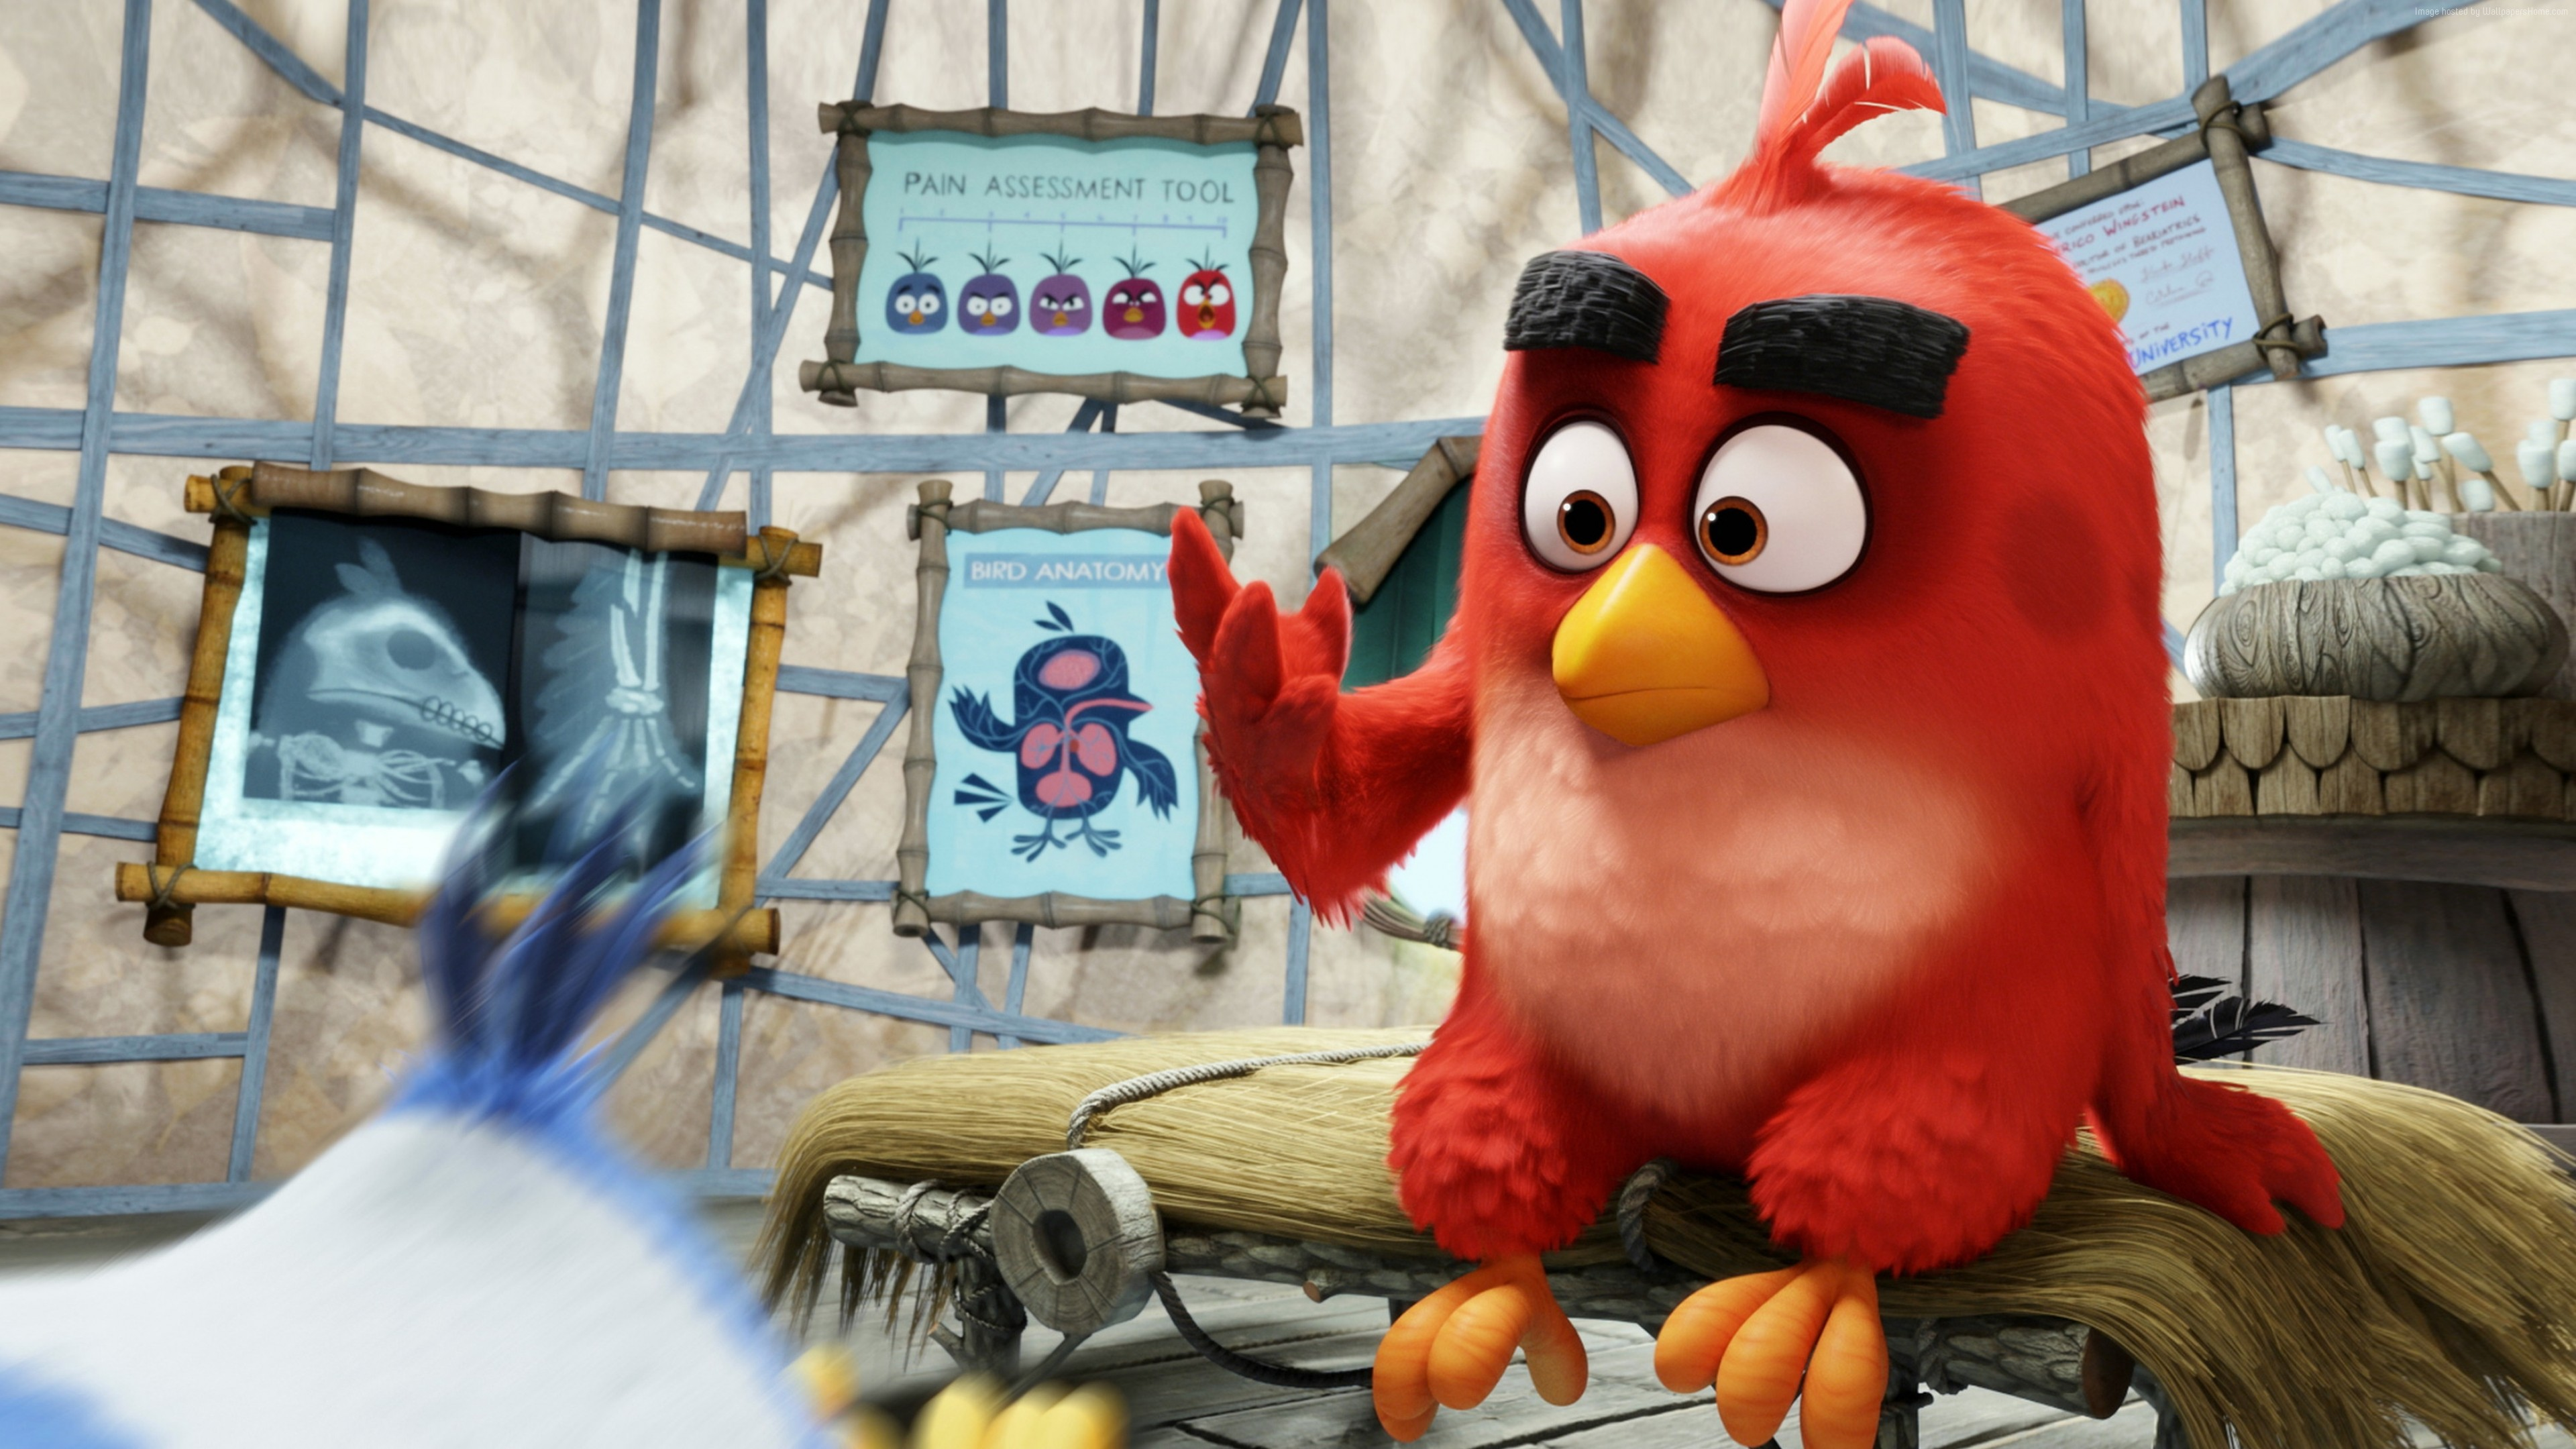 Red The Angry Birds Hd Movies 4k Wallpapers Images Backgrounds